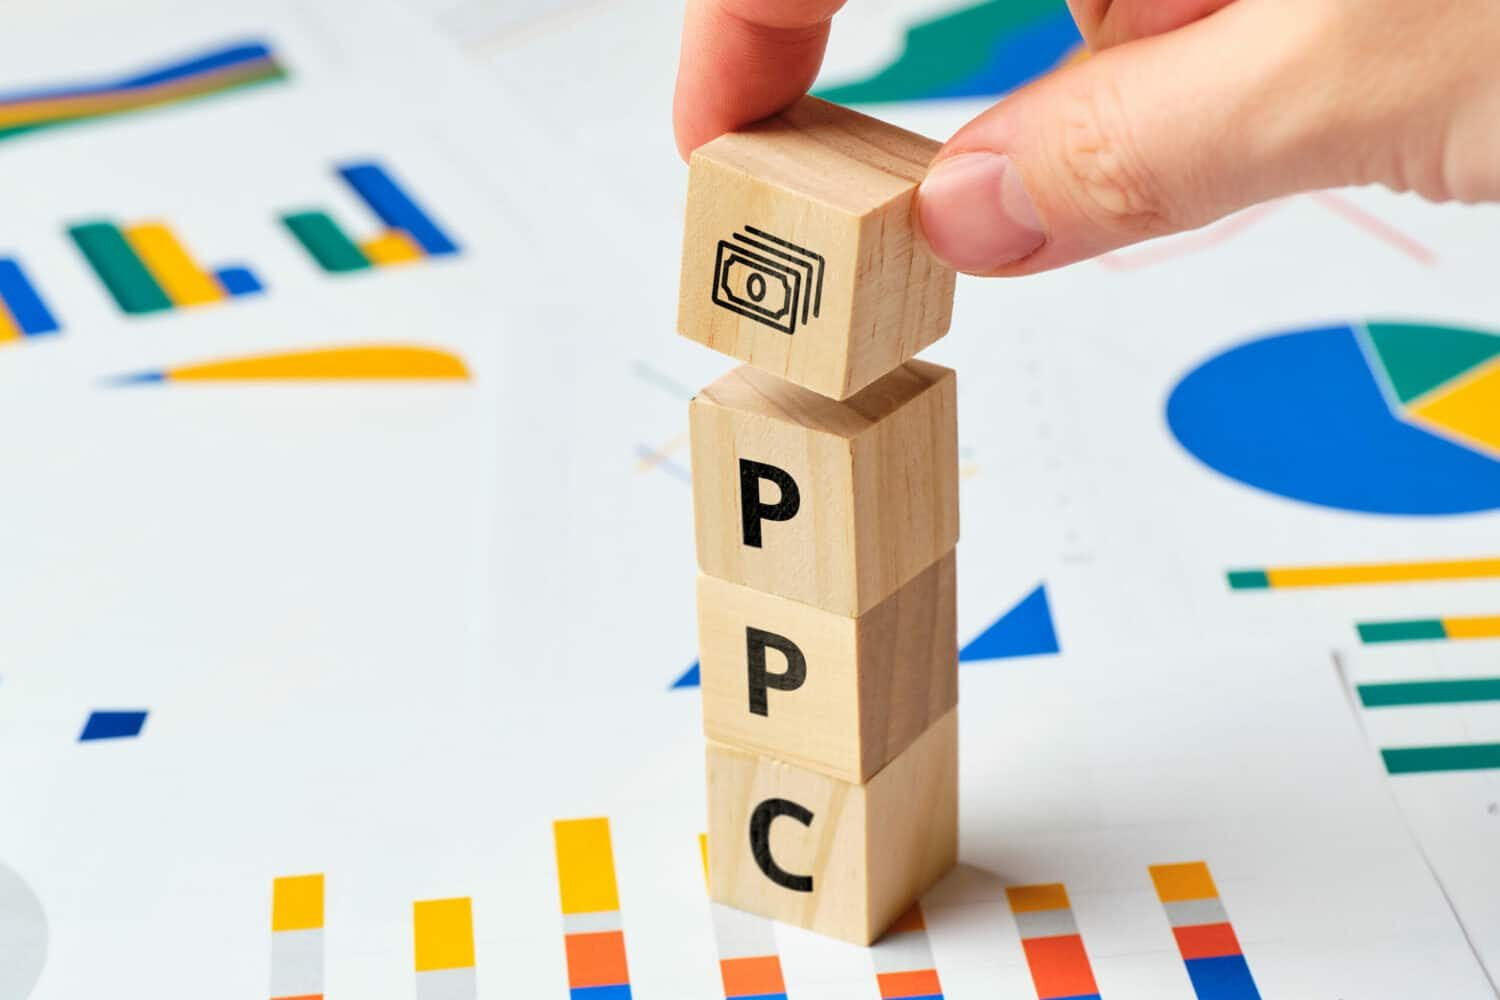 Pay per click PPC on wooden blocks with graphs